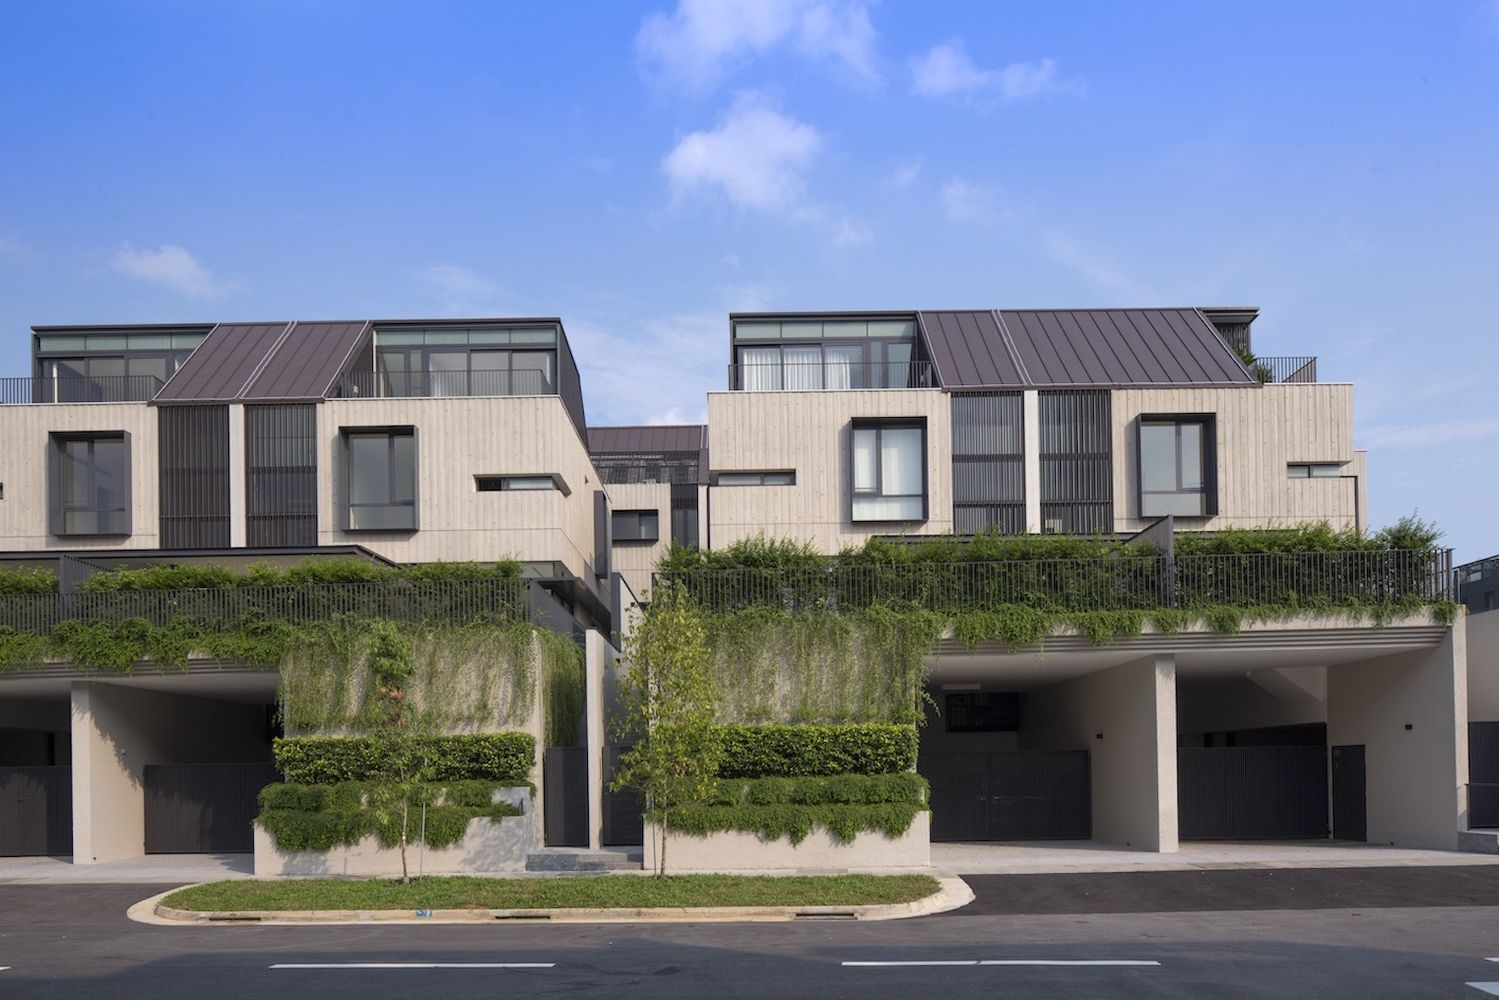 Semi-detached houses make up 106 of the 109 houses at Victoria Park Villas - EDGEPROP SINGAPORE